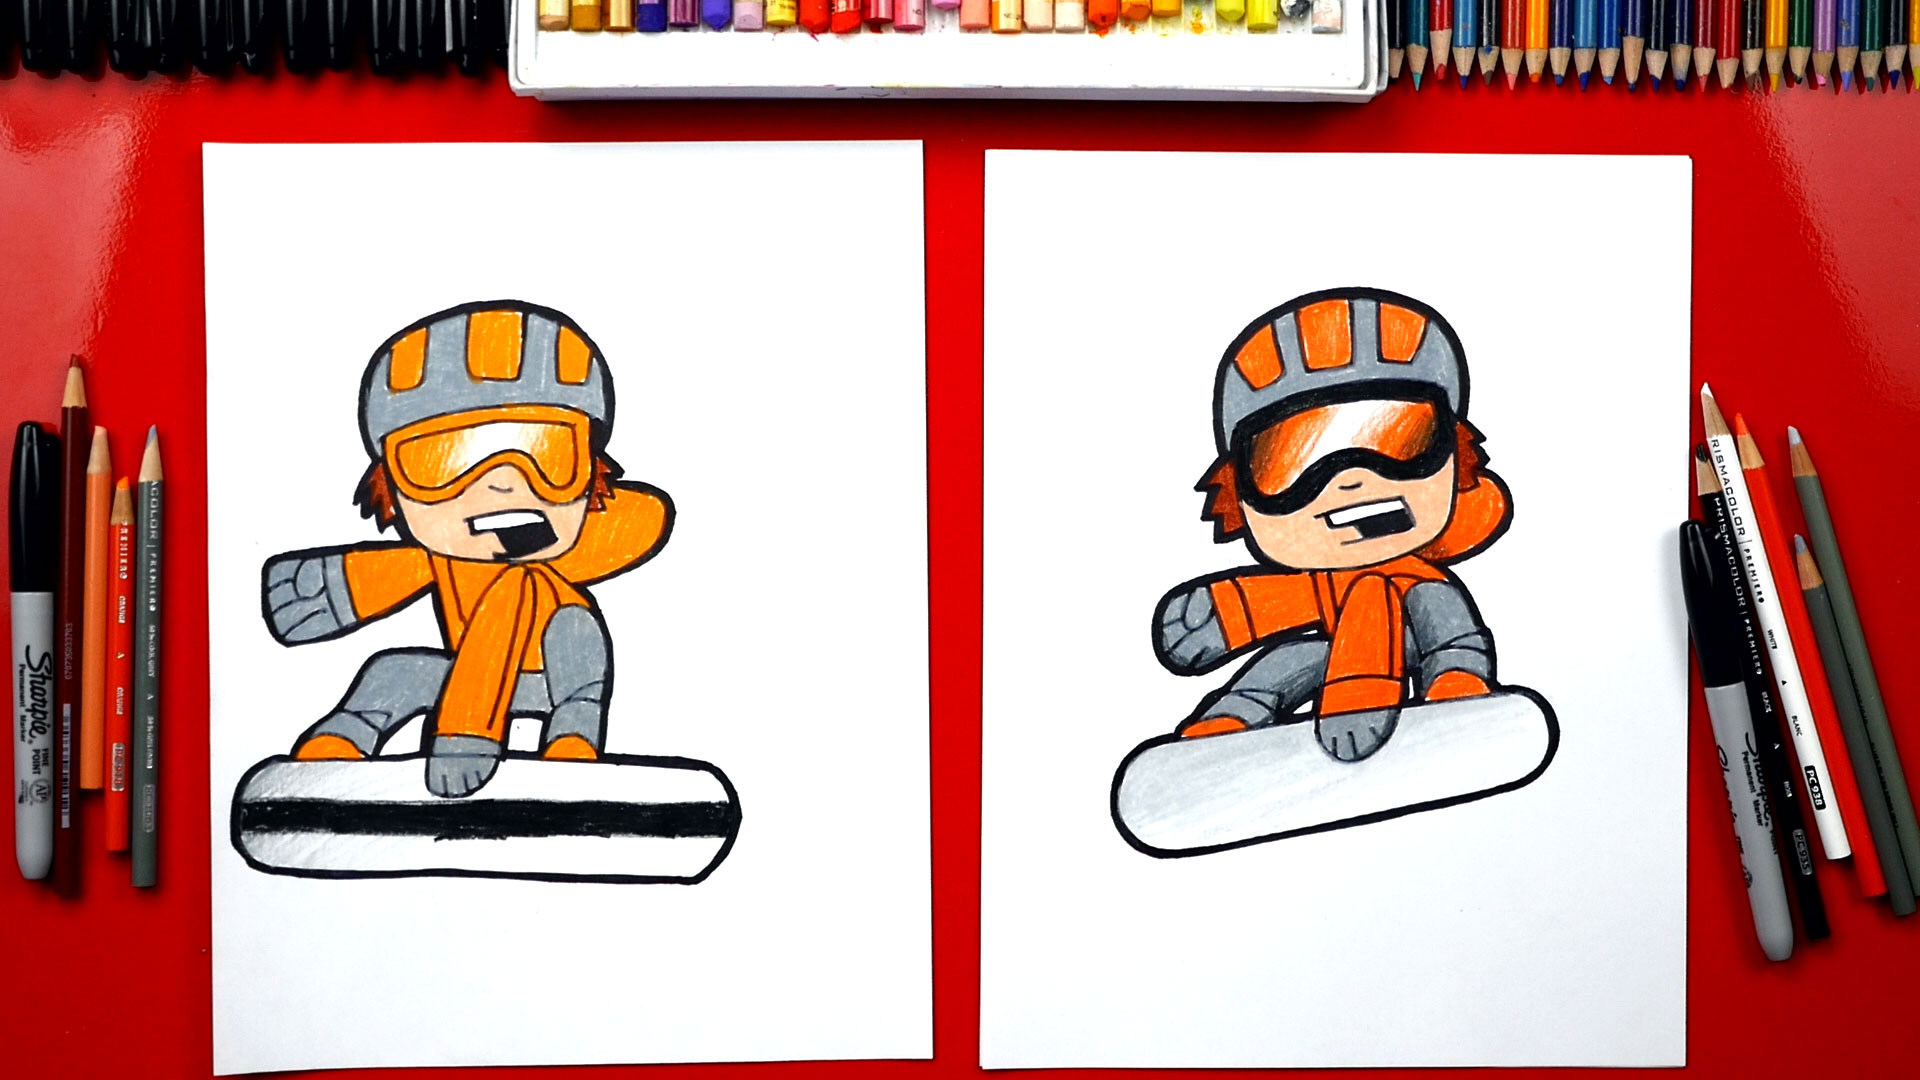 How To Draw A Cartoon Snowboarder Art For Kids Hub